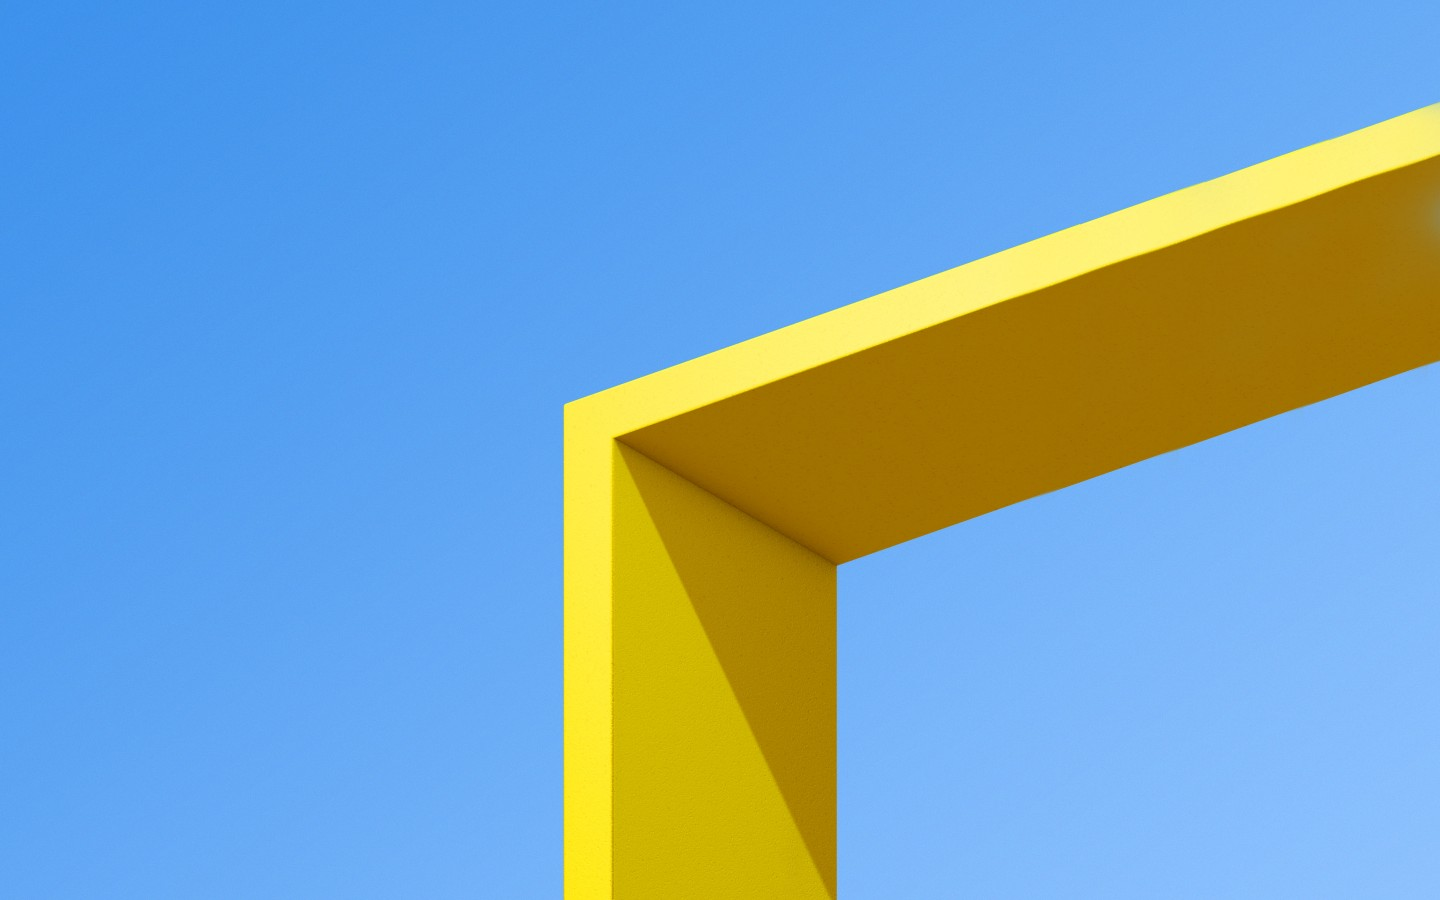 General 1440x900 colorful yellow blue architecture abstract 3D Abstract shadow minimalism sunlight